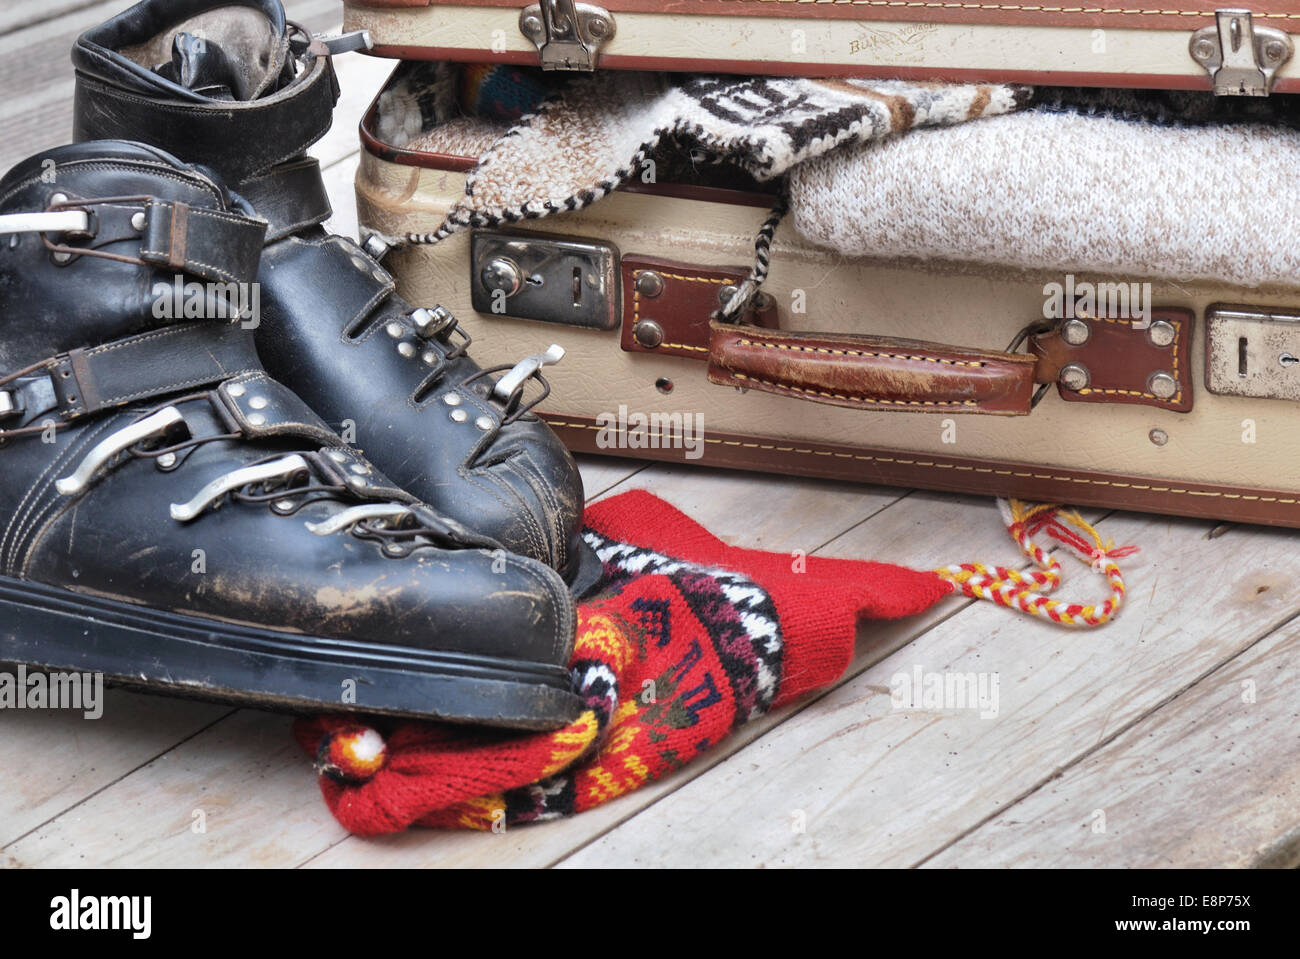 0c08f91f9f9 small open suitcase full of warm clothes with old ski boots Stock ...